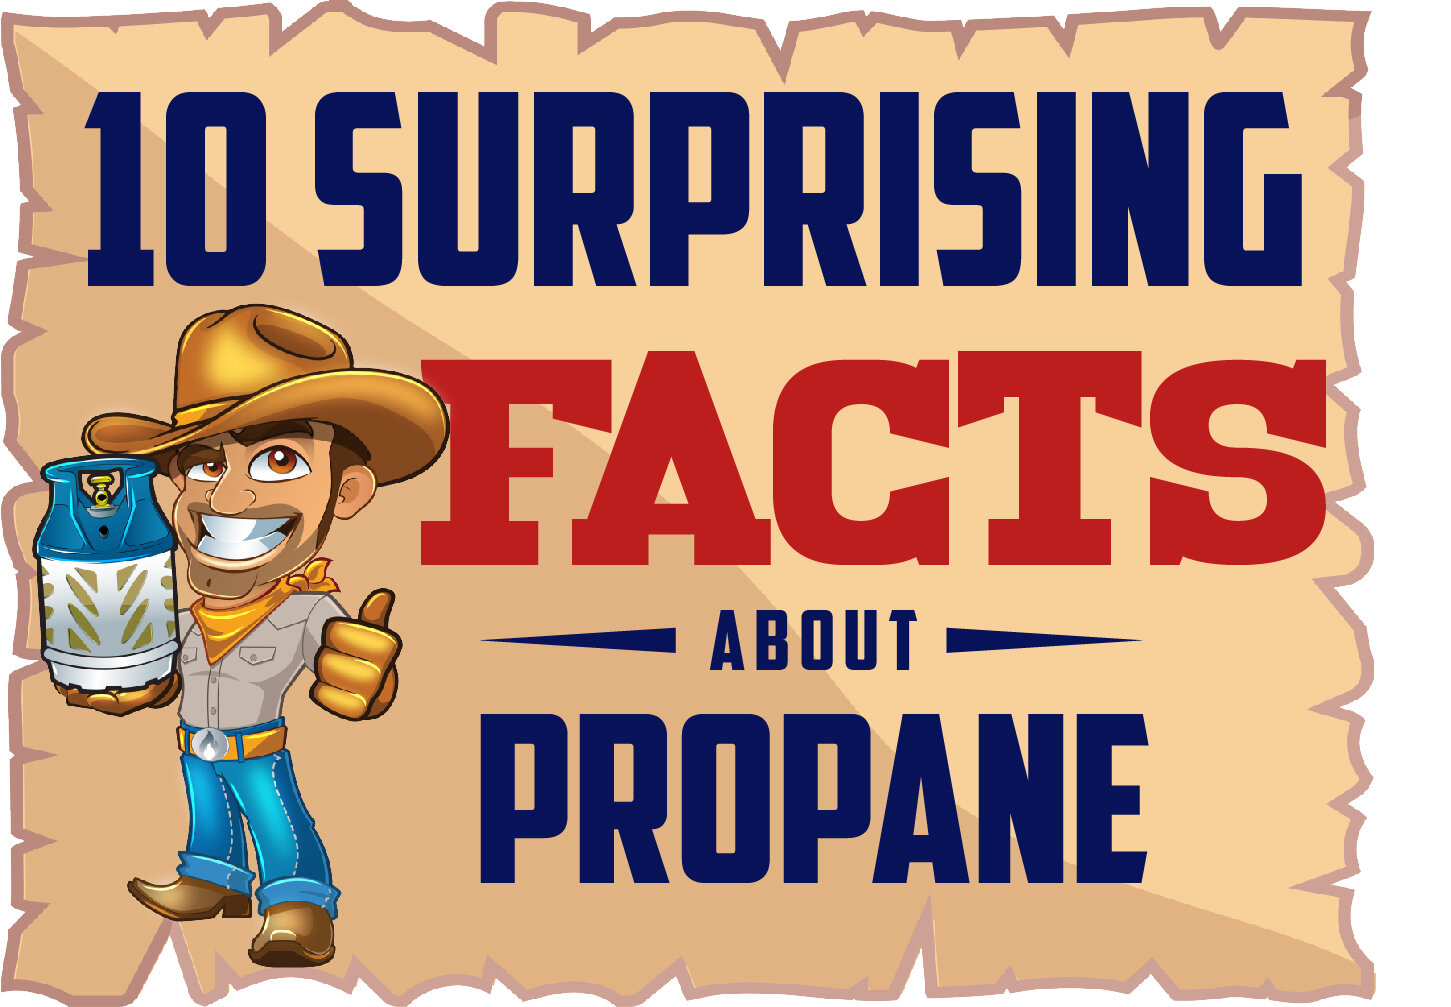 10 Surprising Facts about Propane